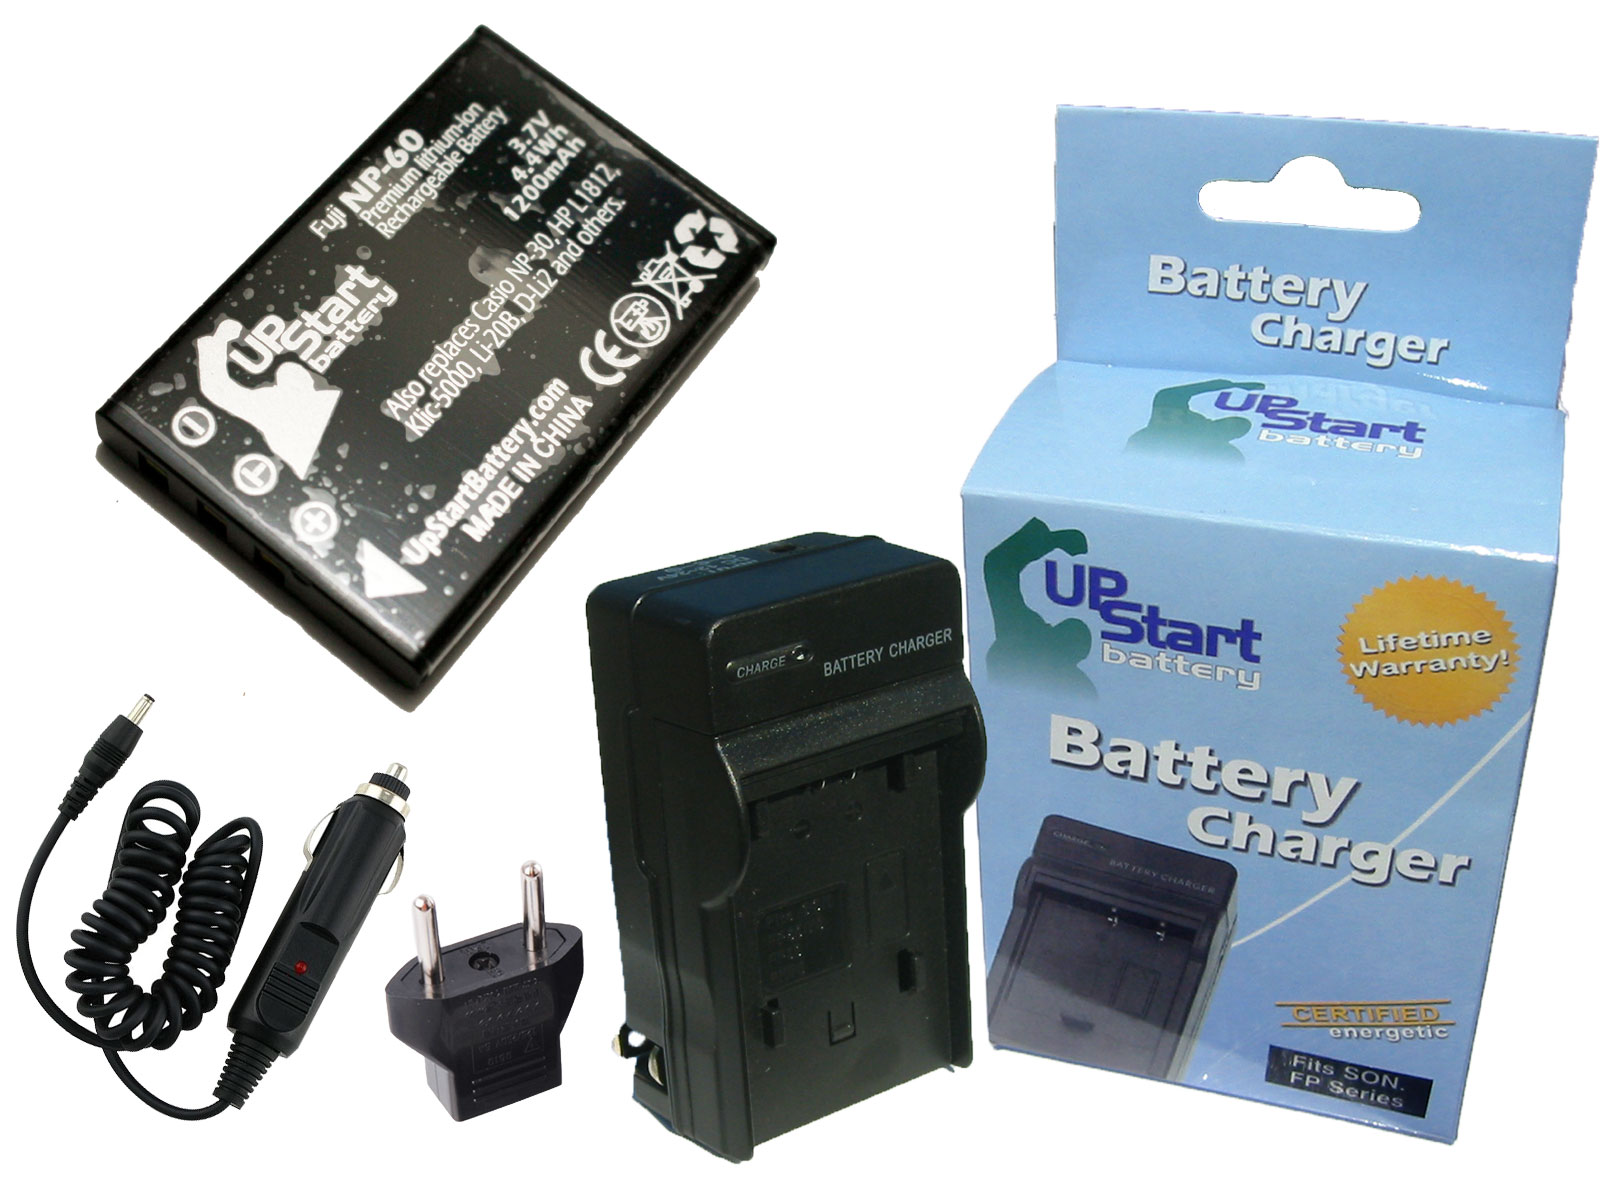 UpStart Battery Ricoh DB-40 Battery and Charger with Car Plug and EU Adapter - Replacement for Ricoh DB-40 Digital Camera Batteries and Chargers at Sears.com